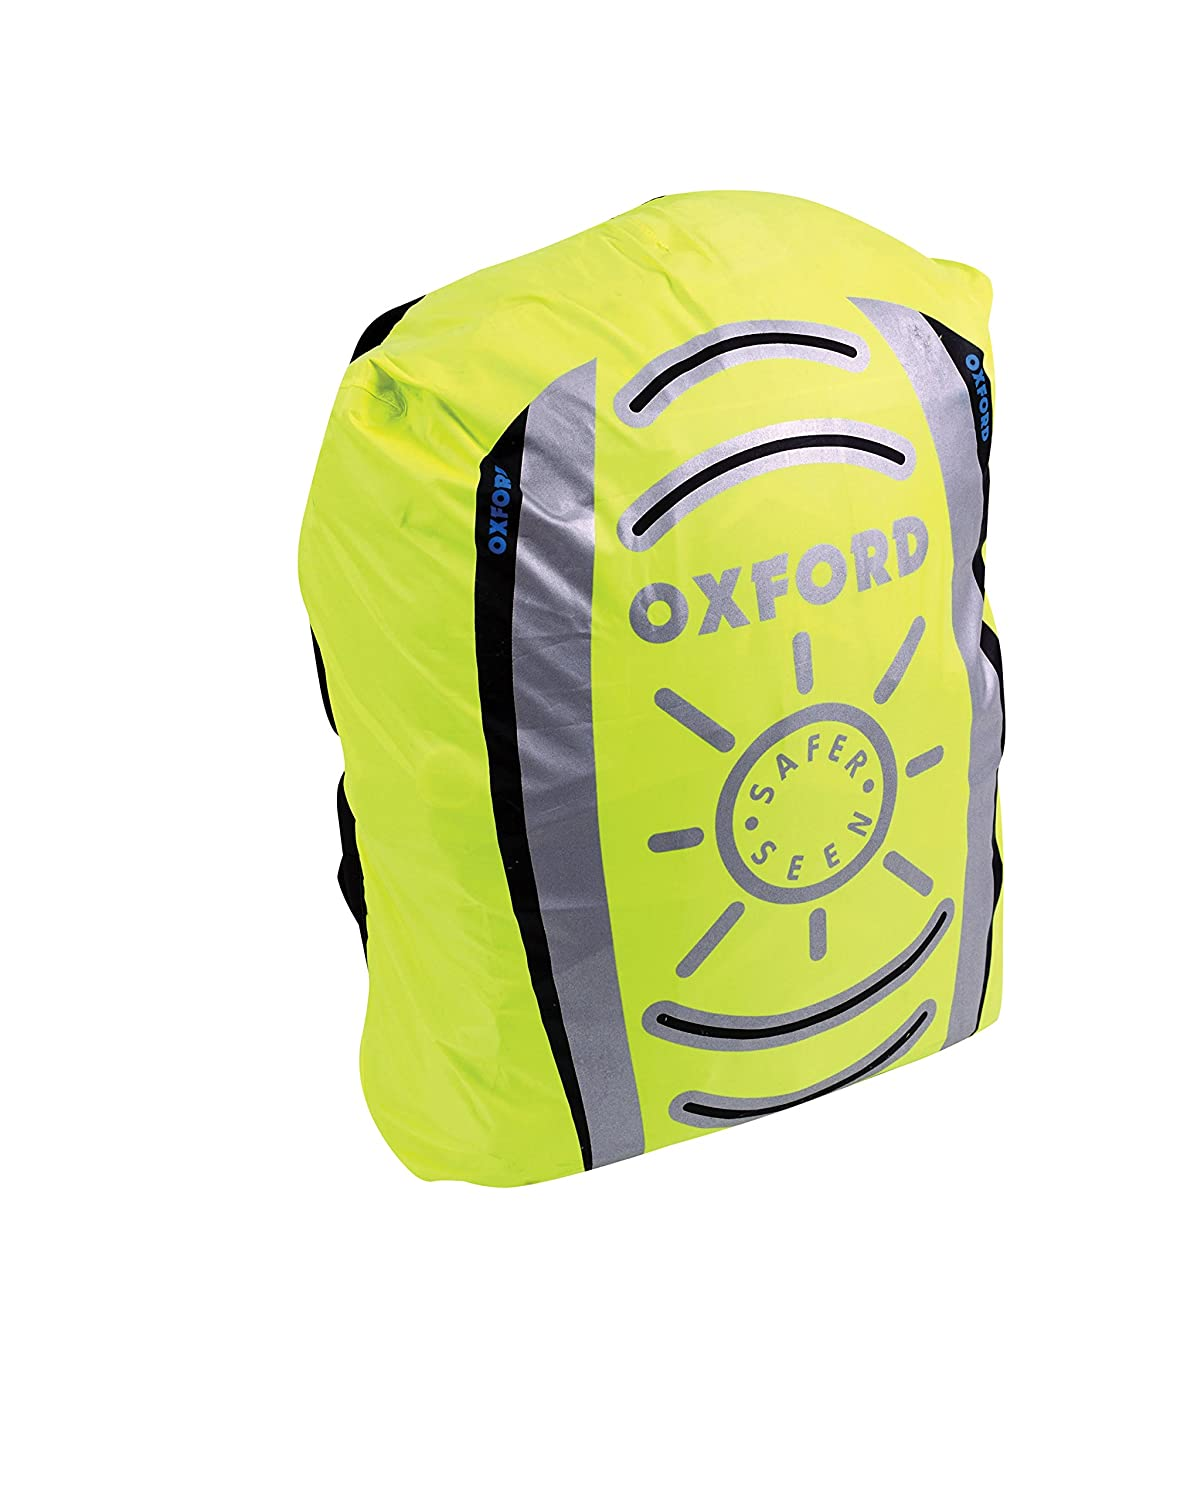 Oxford Bright Universal Waterproof Cover for Backpacks - Yellow OF247